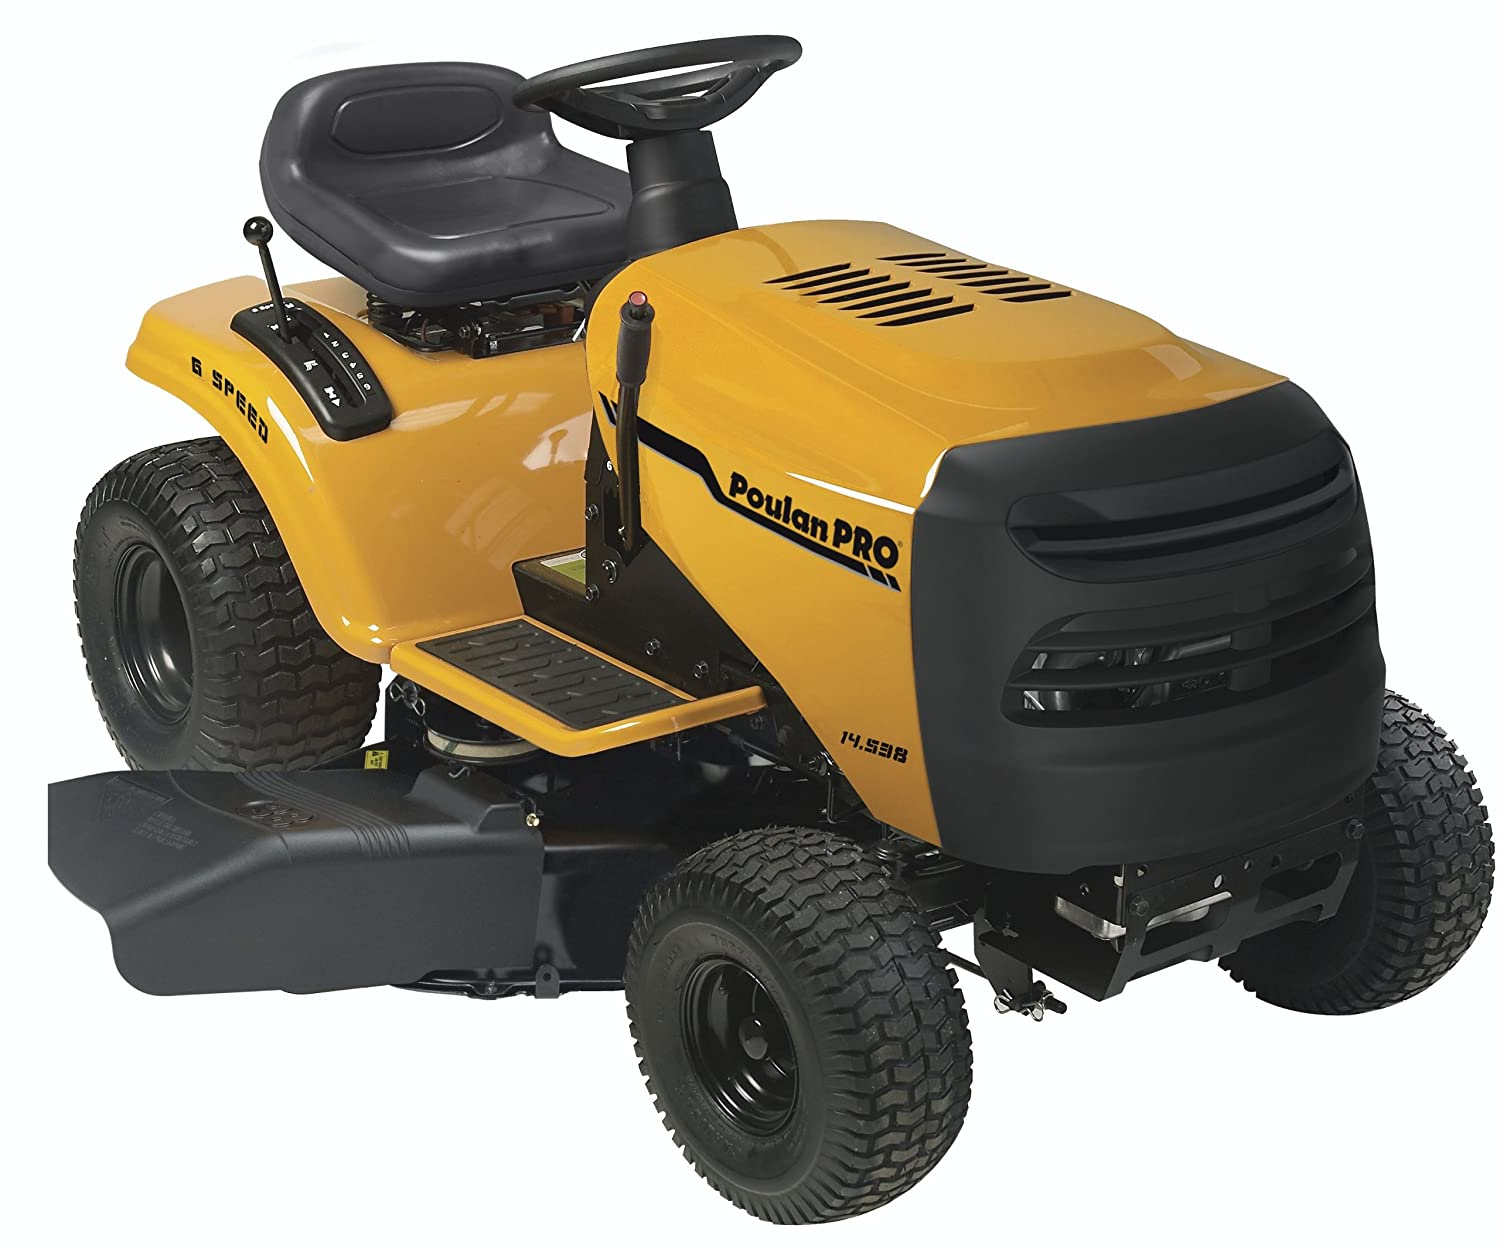 Poulan Pro PB145G38 6-Speed Lawn Tractor, 38-Inch